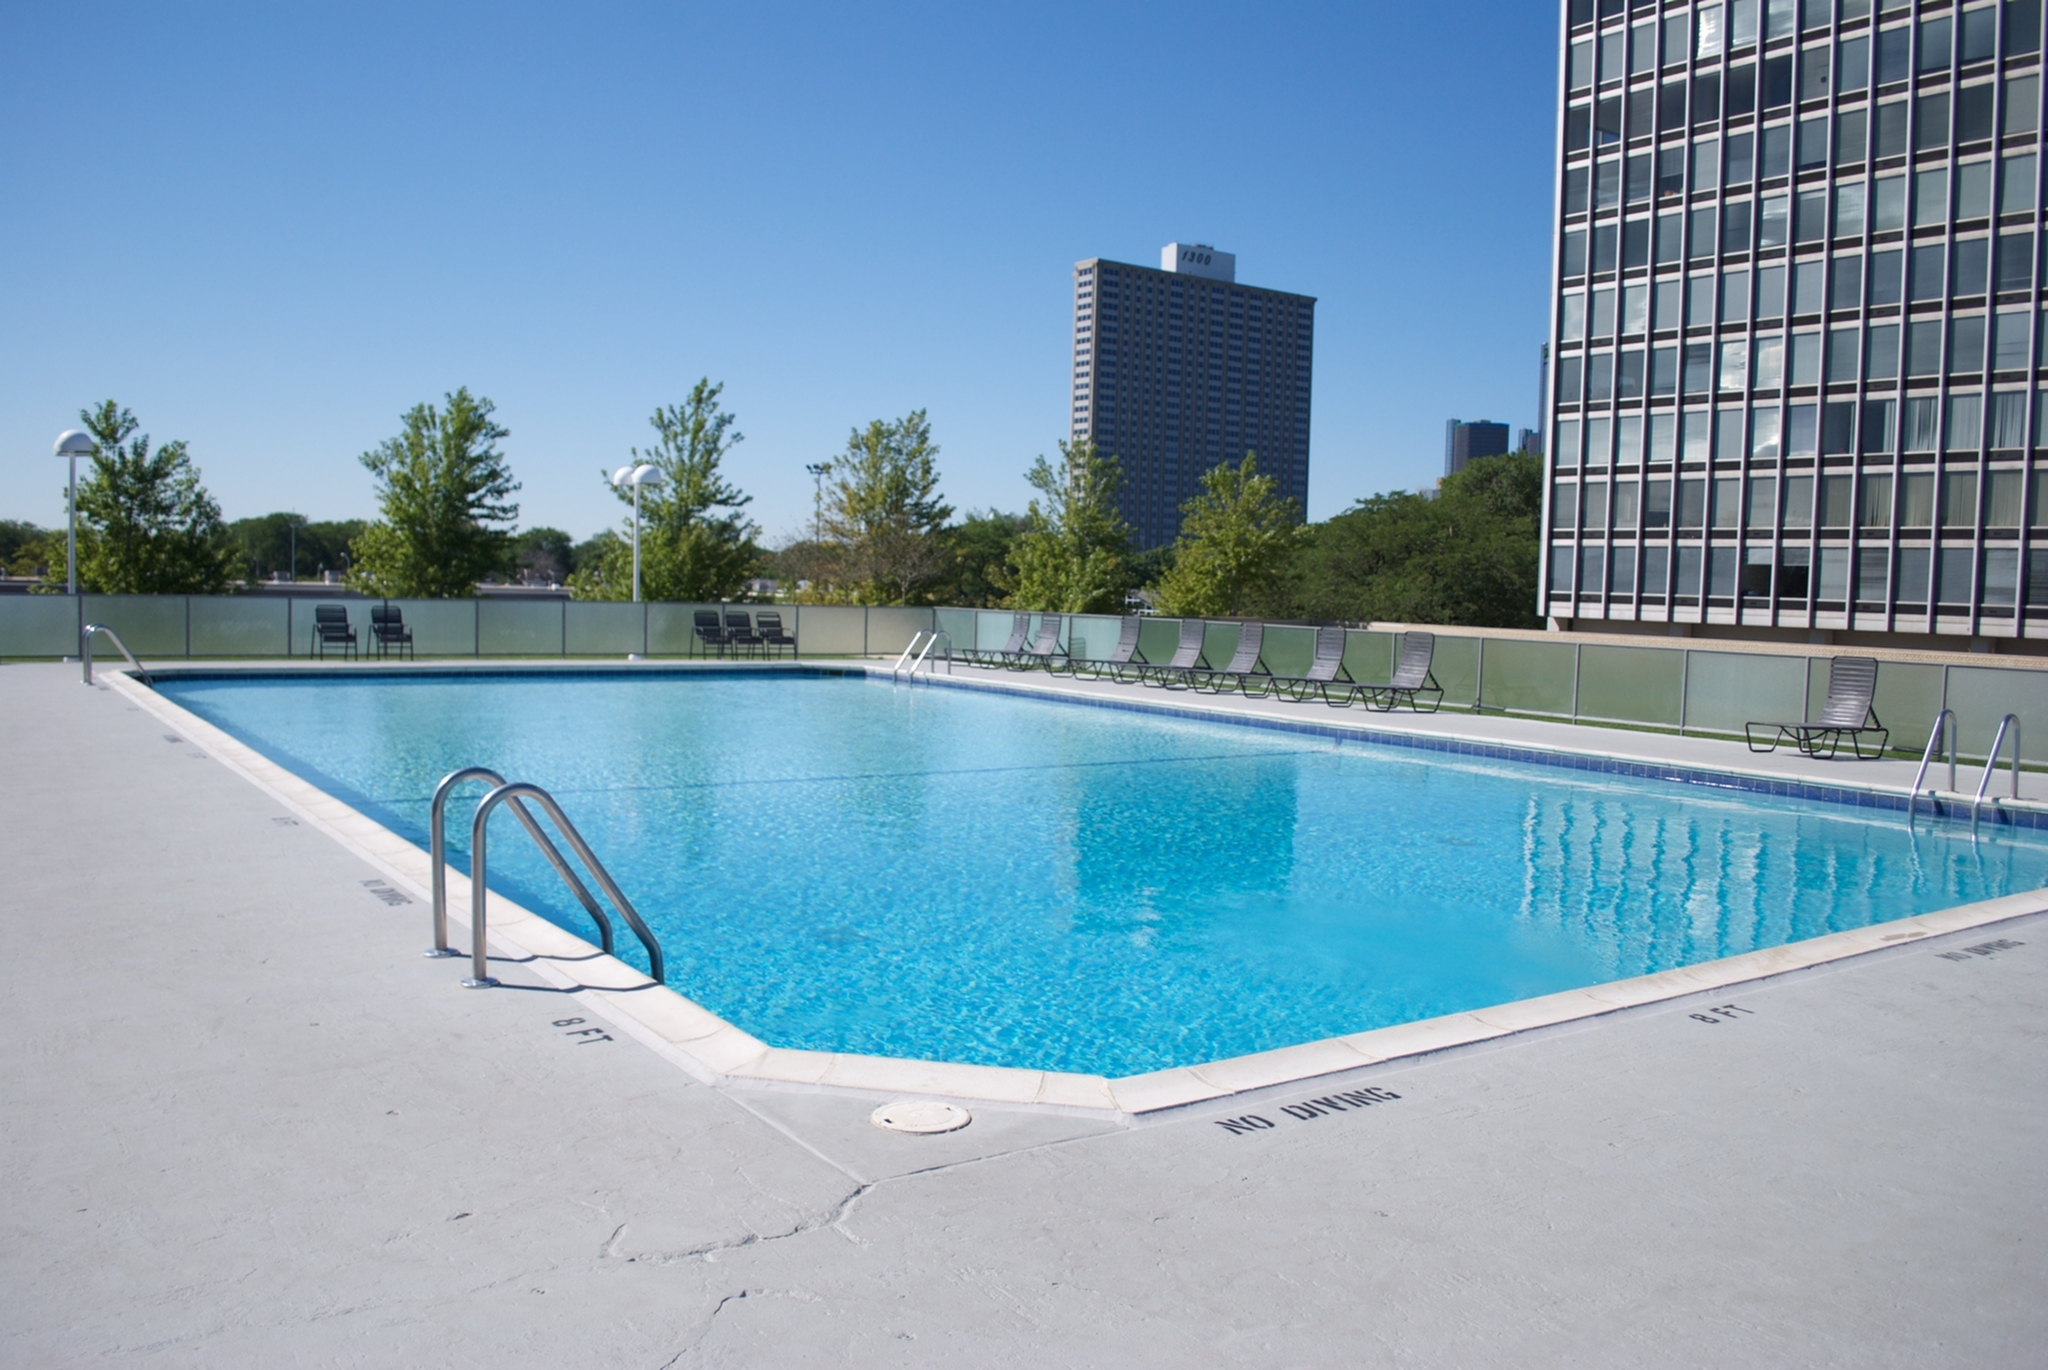 Image of Outdoor heated swimming pool for Lafayette Towers